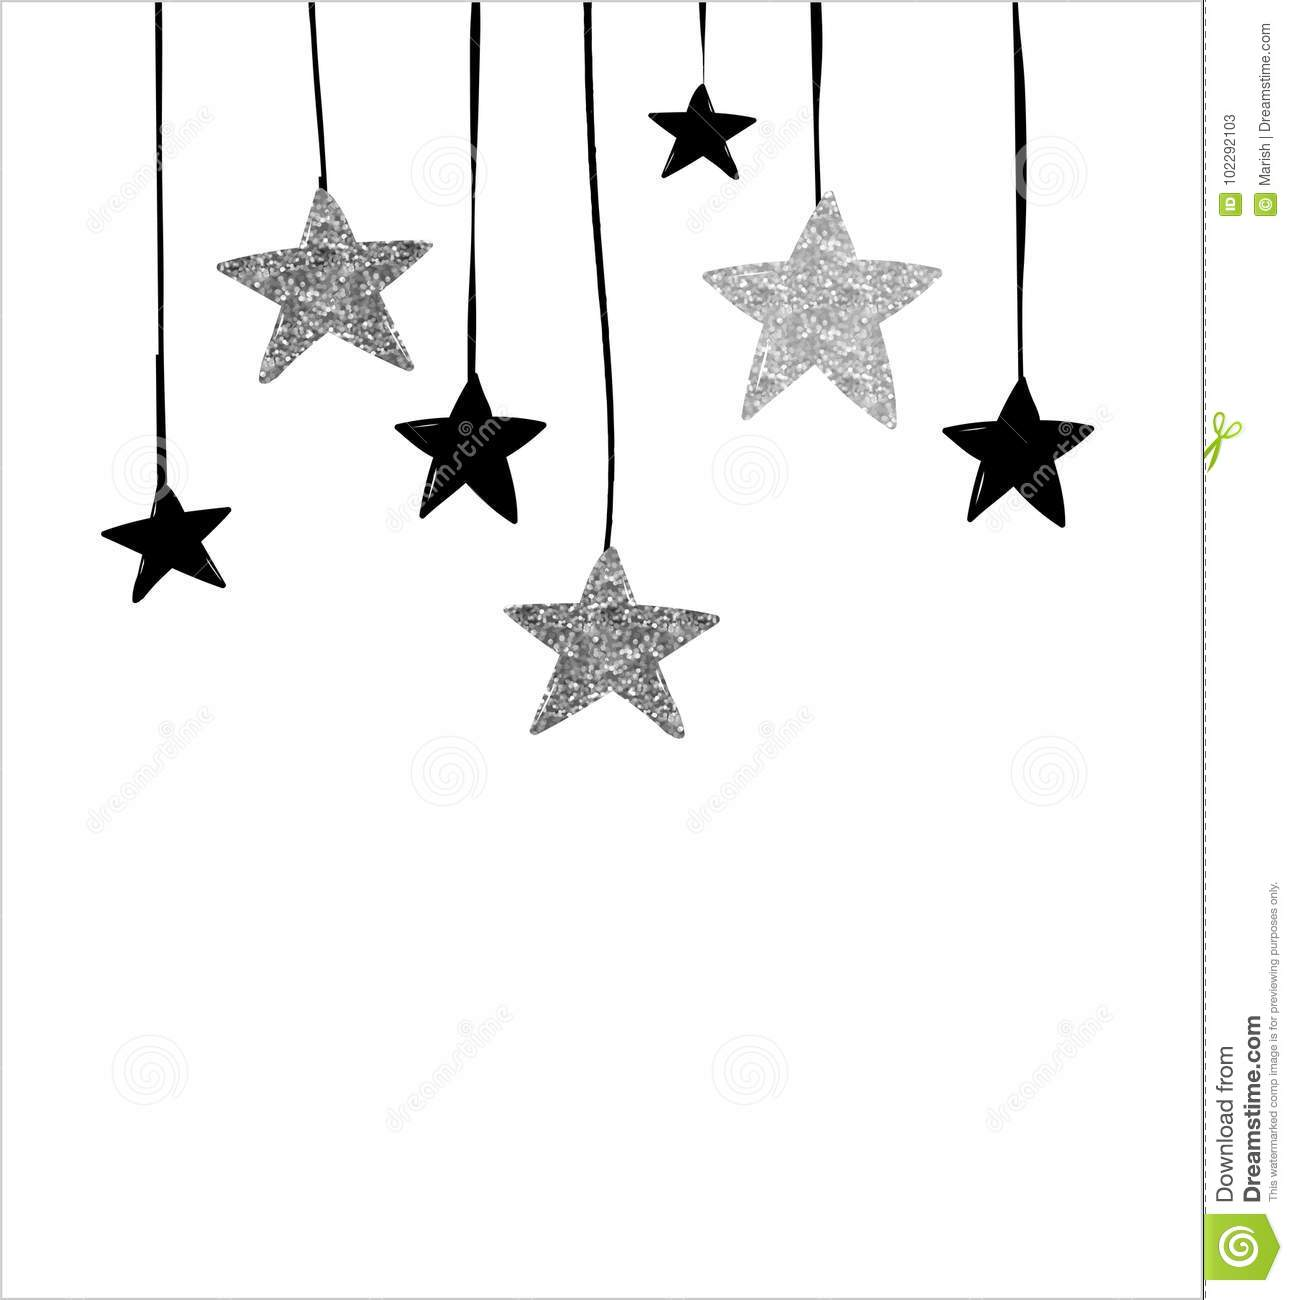 Merry Christmas Greeting Card With Hanging Stars Stock